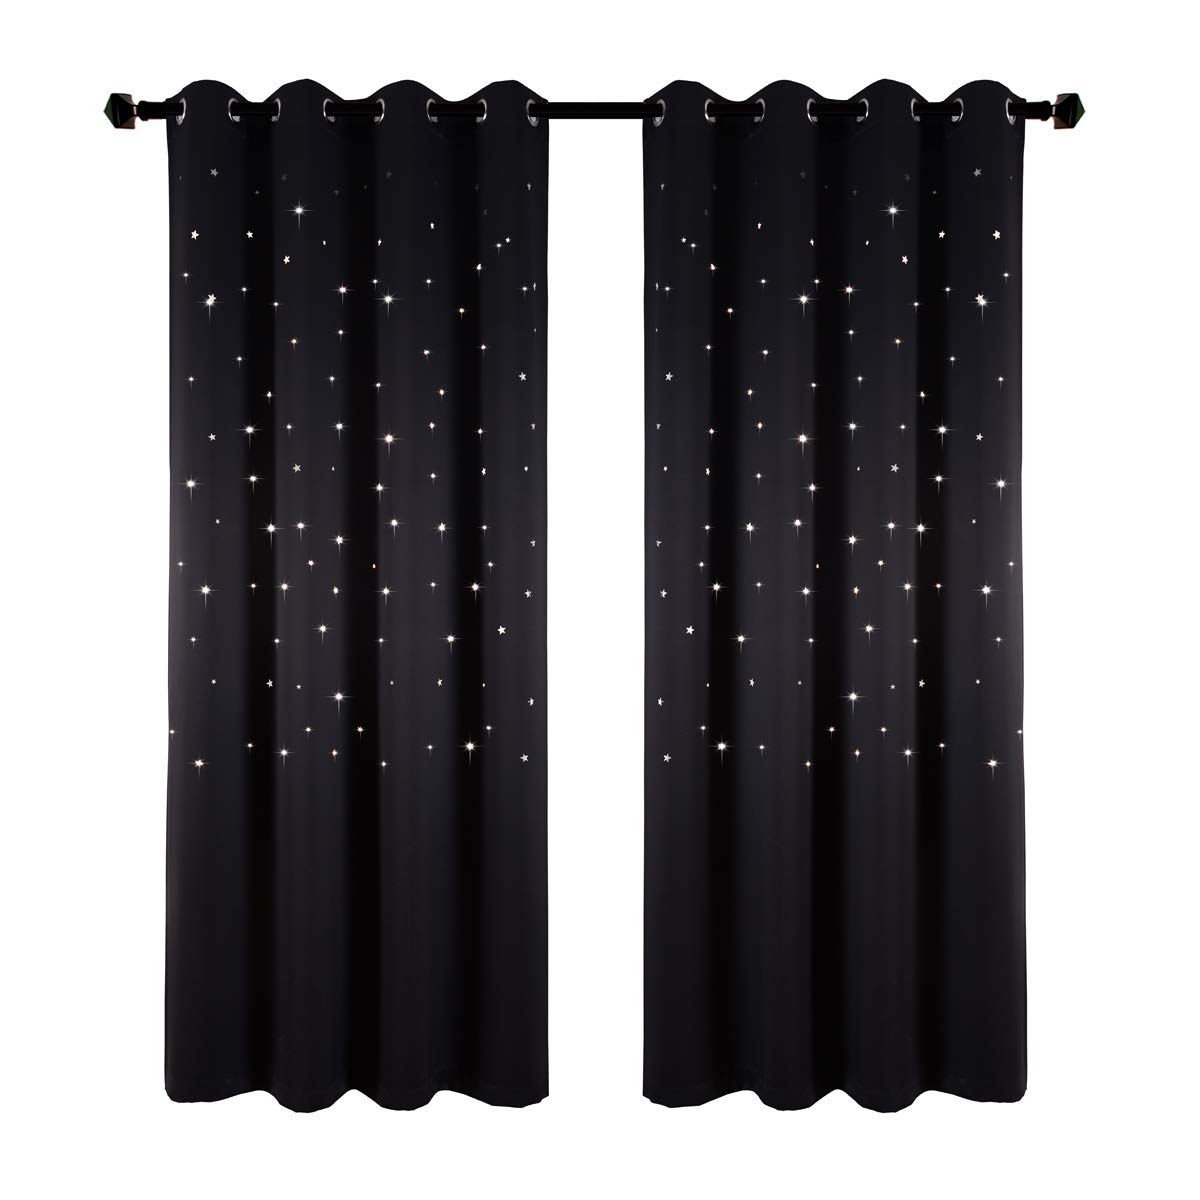 Star Wars Themed Kids Room Blackout Curtains, Kotile 2 Panels 63 Inch Length Grommet Thick and Soft Room Darkening Curtain with Laser Cutting Stars, Perfect for Baby Nursery, Royal Blue Ketaishi Textile